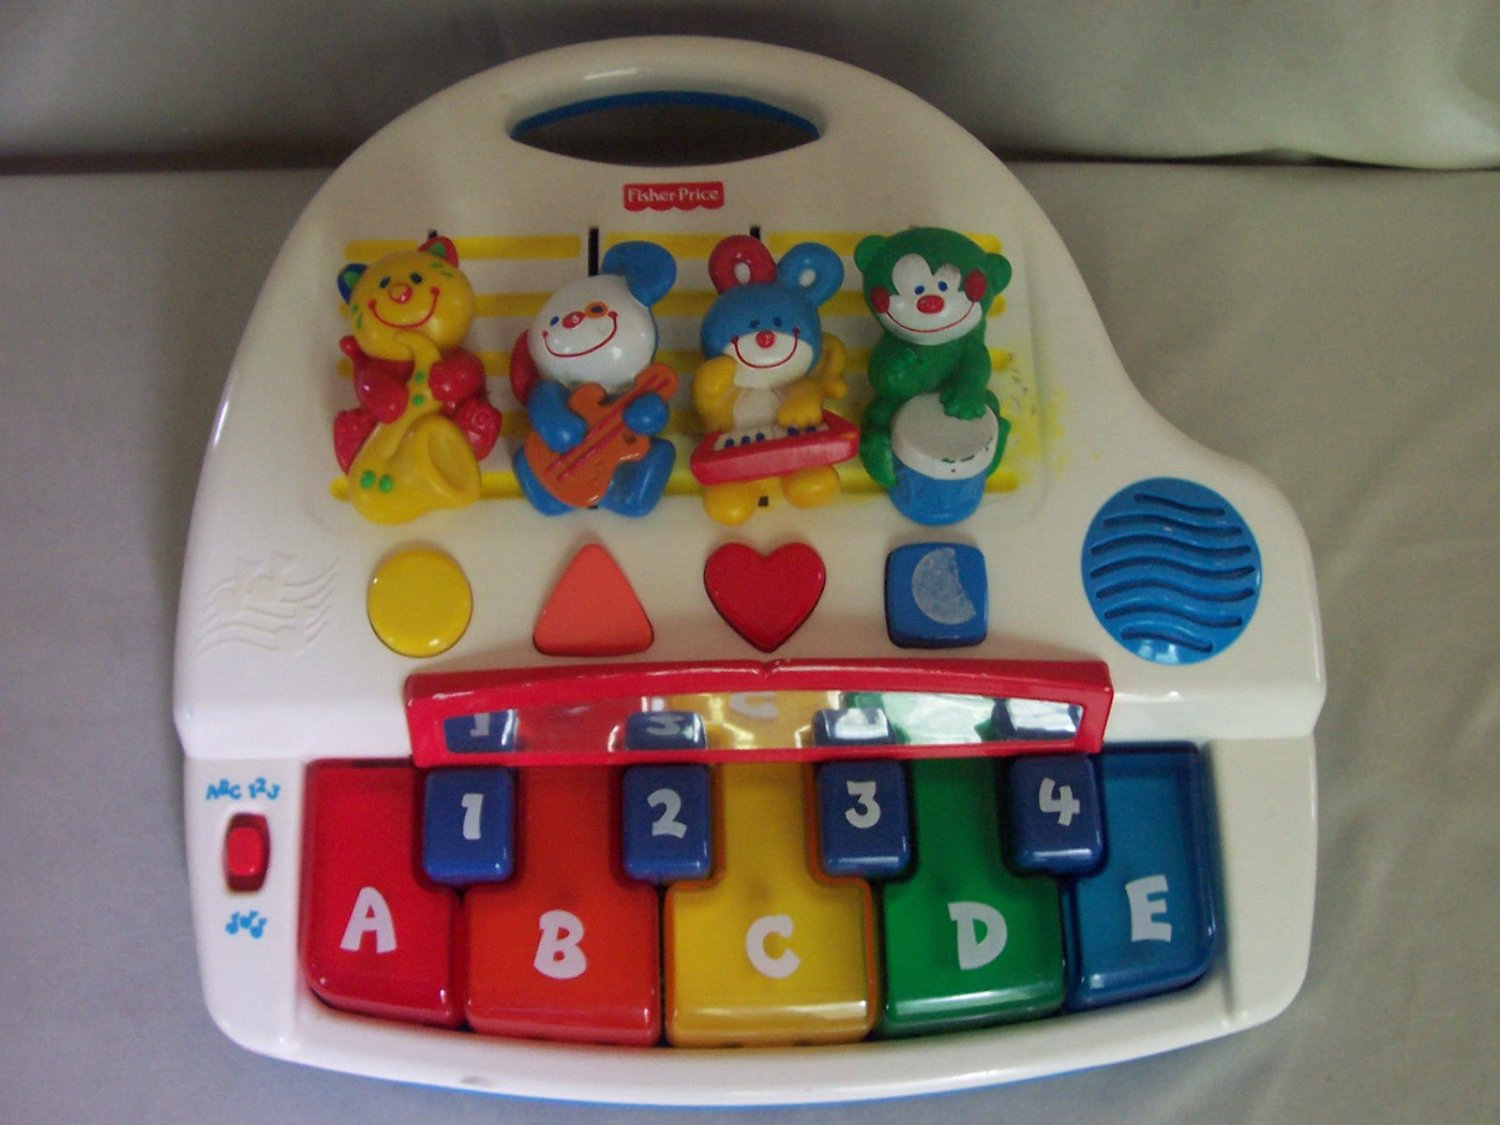 Alphabet Learning Toys : Buy fisher price learning piano alphabet numbers shapes in cheap